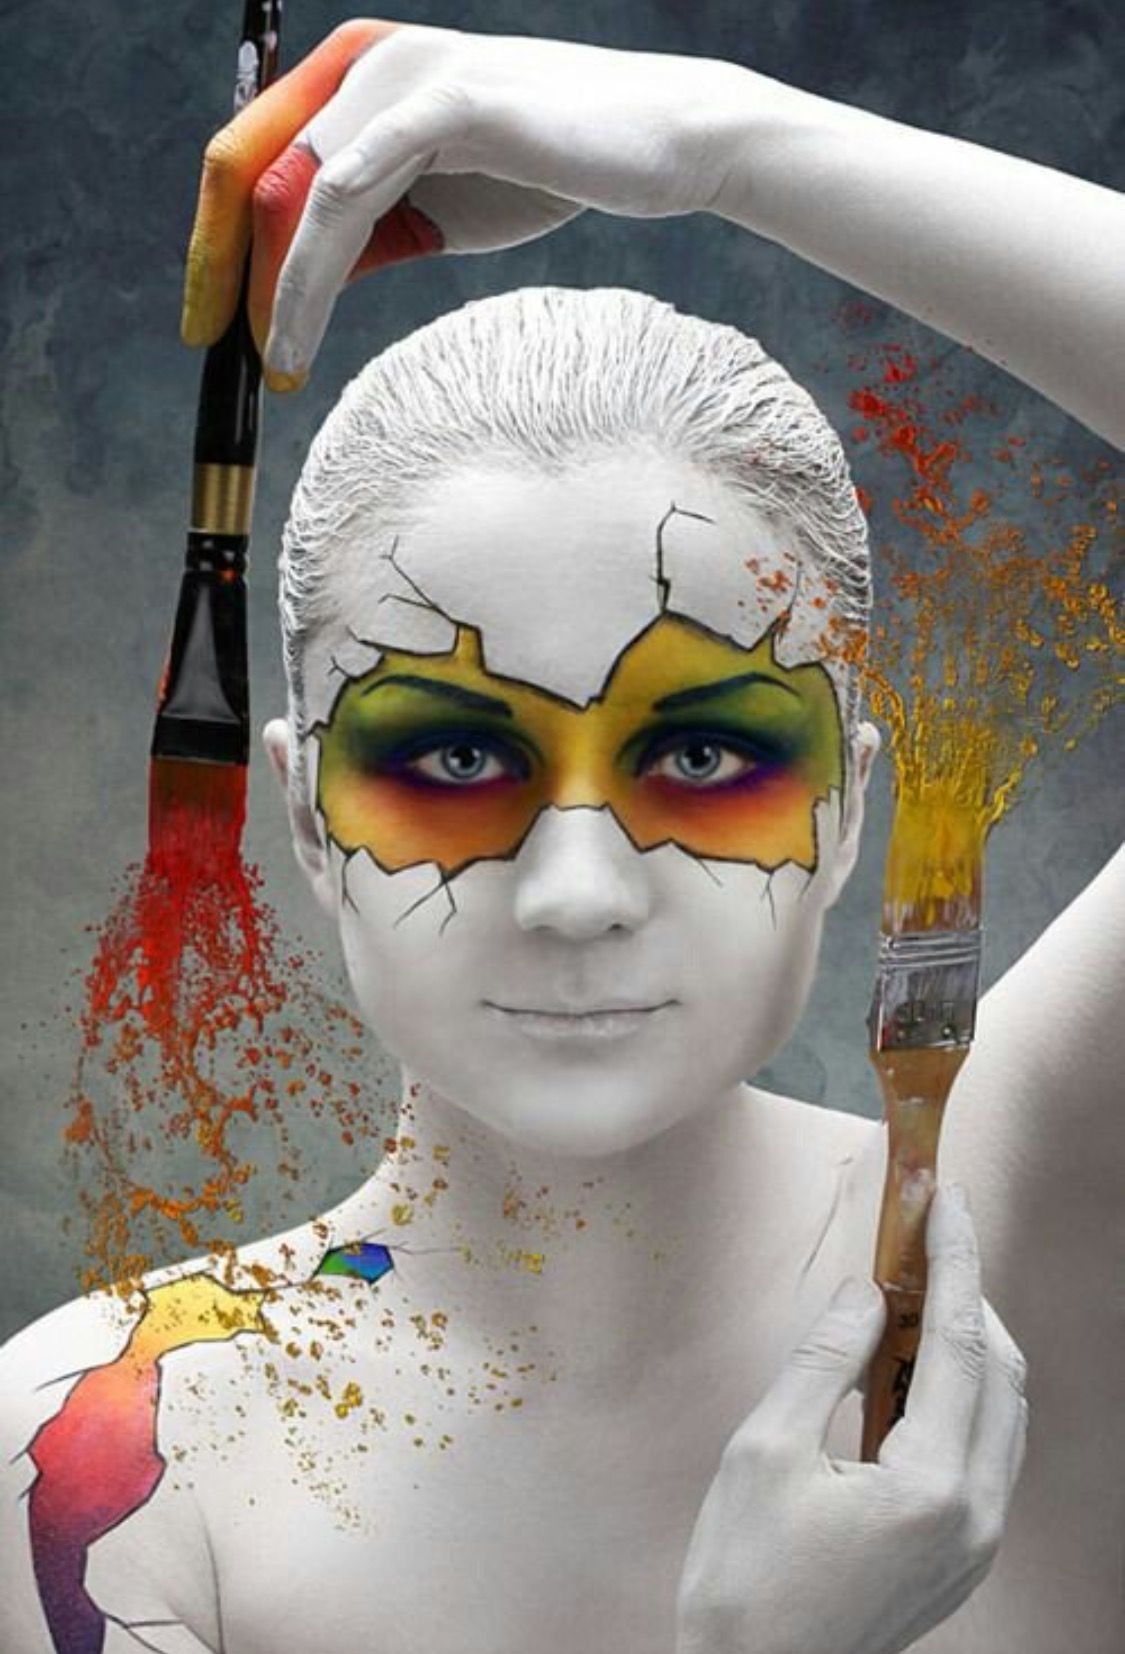 Rxskincenter Beauty Bodyart Mehron Cinemasecrets Graftobian Glomineral Cosmetics Drag Dragqueen Body Art Painting Face Art Body Painting